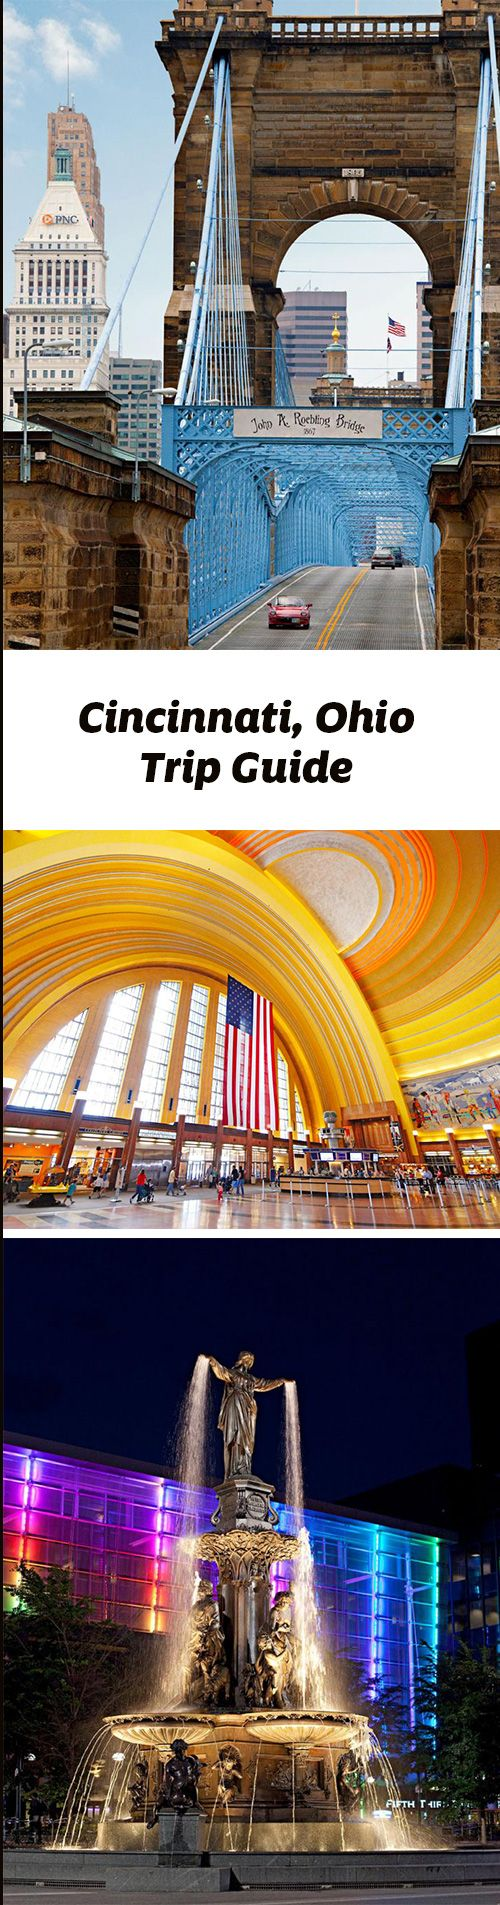 The Queen City is a glittering hub of culture and commerce along the Ohio River in the state's southwest corner. Its crown jewels include pro sports, a stunning museum center and a unique flair for food. Trip guide: http://www.midwestliving.com/travel/ohio/cincinnati/cincinnati-trip-guide/